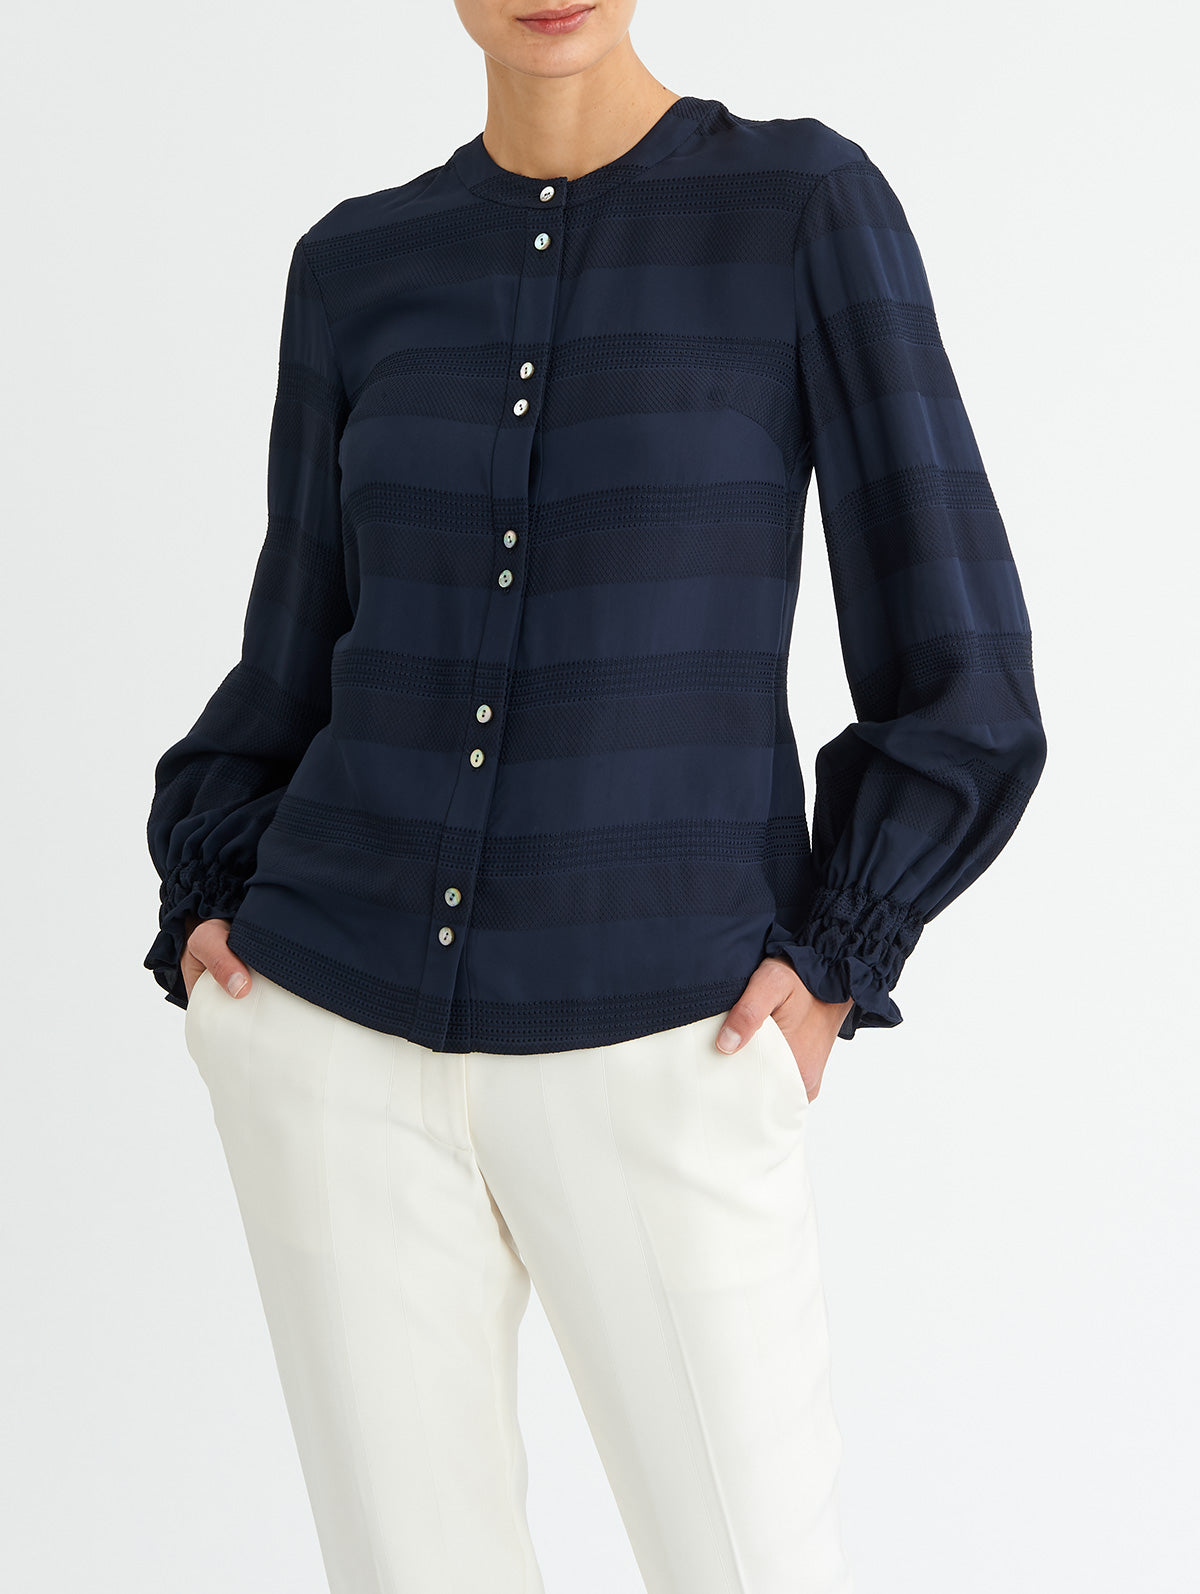 SHIRRED CUFF TOP, NAVY<br> PRE-ORDER